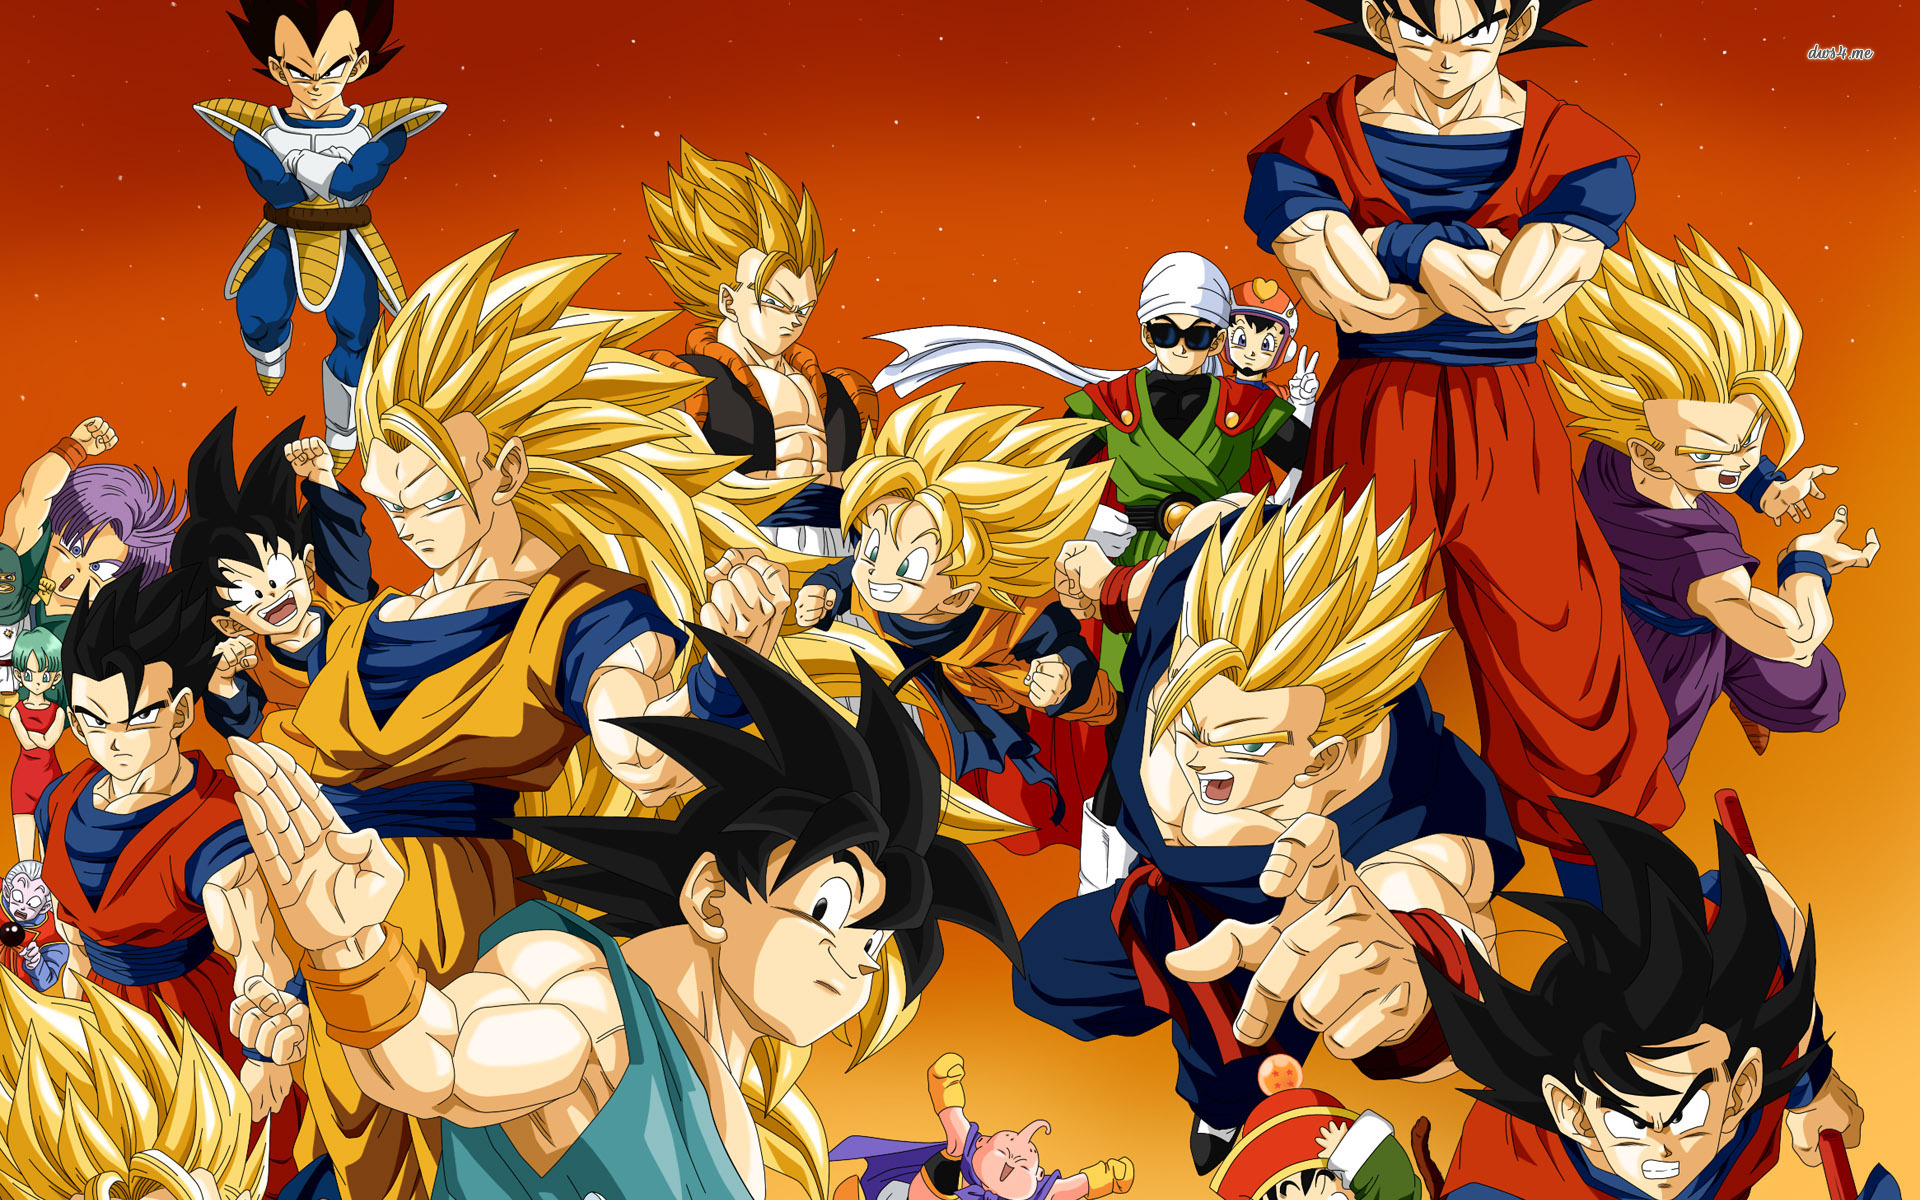 Fondos De Pantalla De Dragon Ball: Dragon Ball Z Wallpapers 1080p